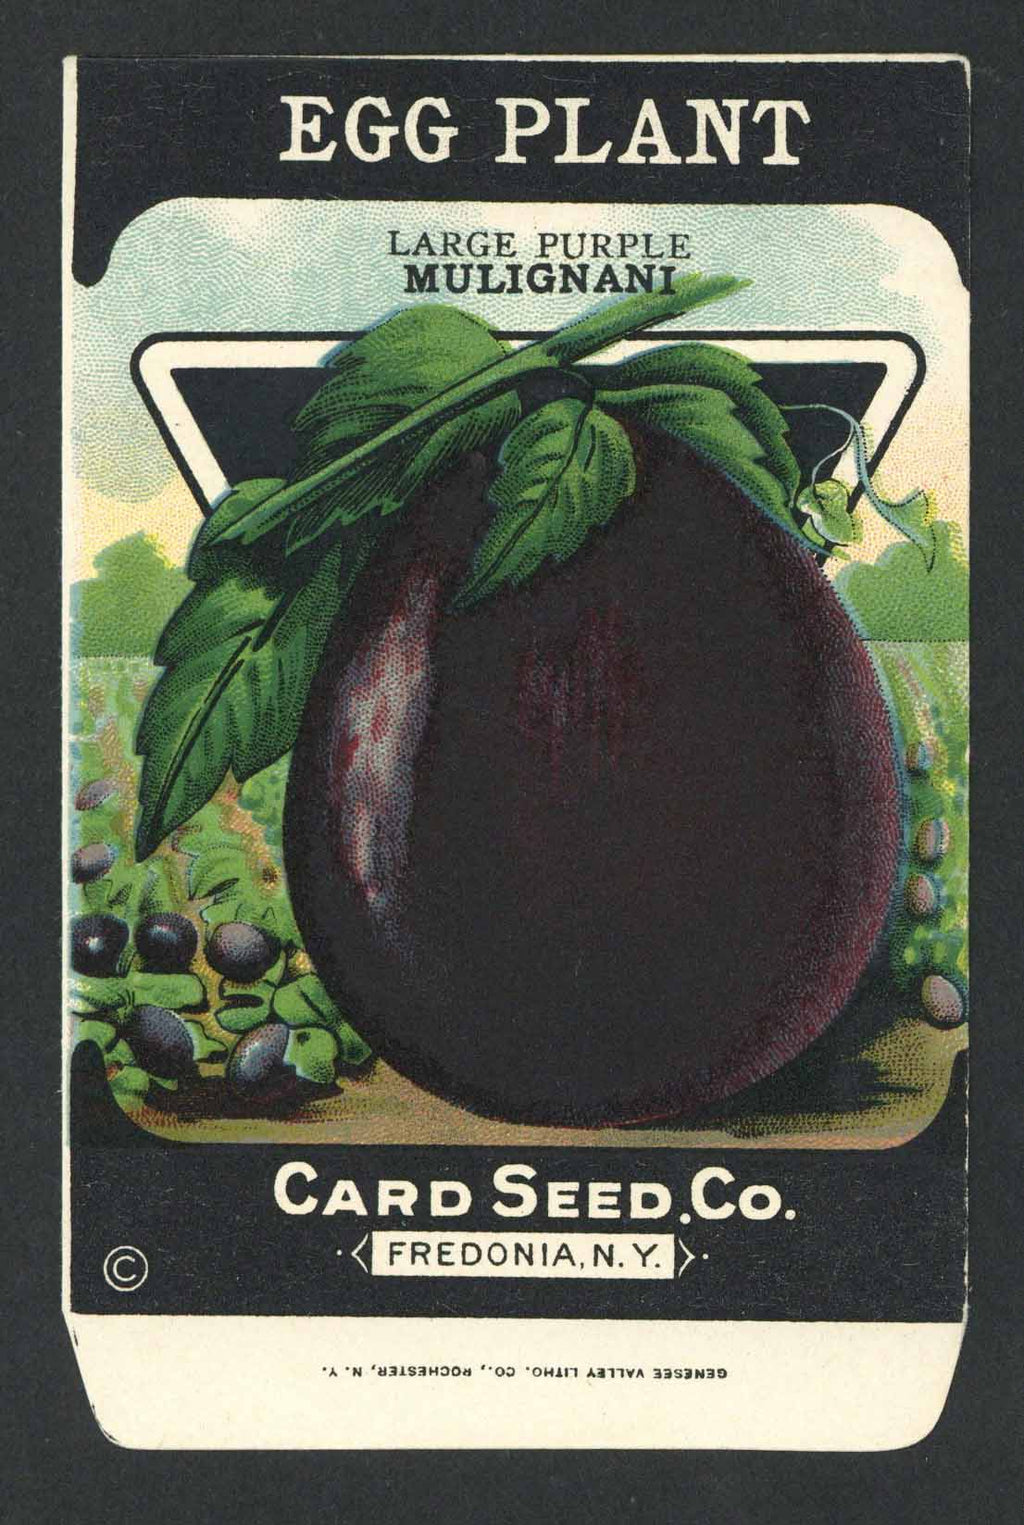 Egg Plant Antique Card Seed Co. Seed Packet